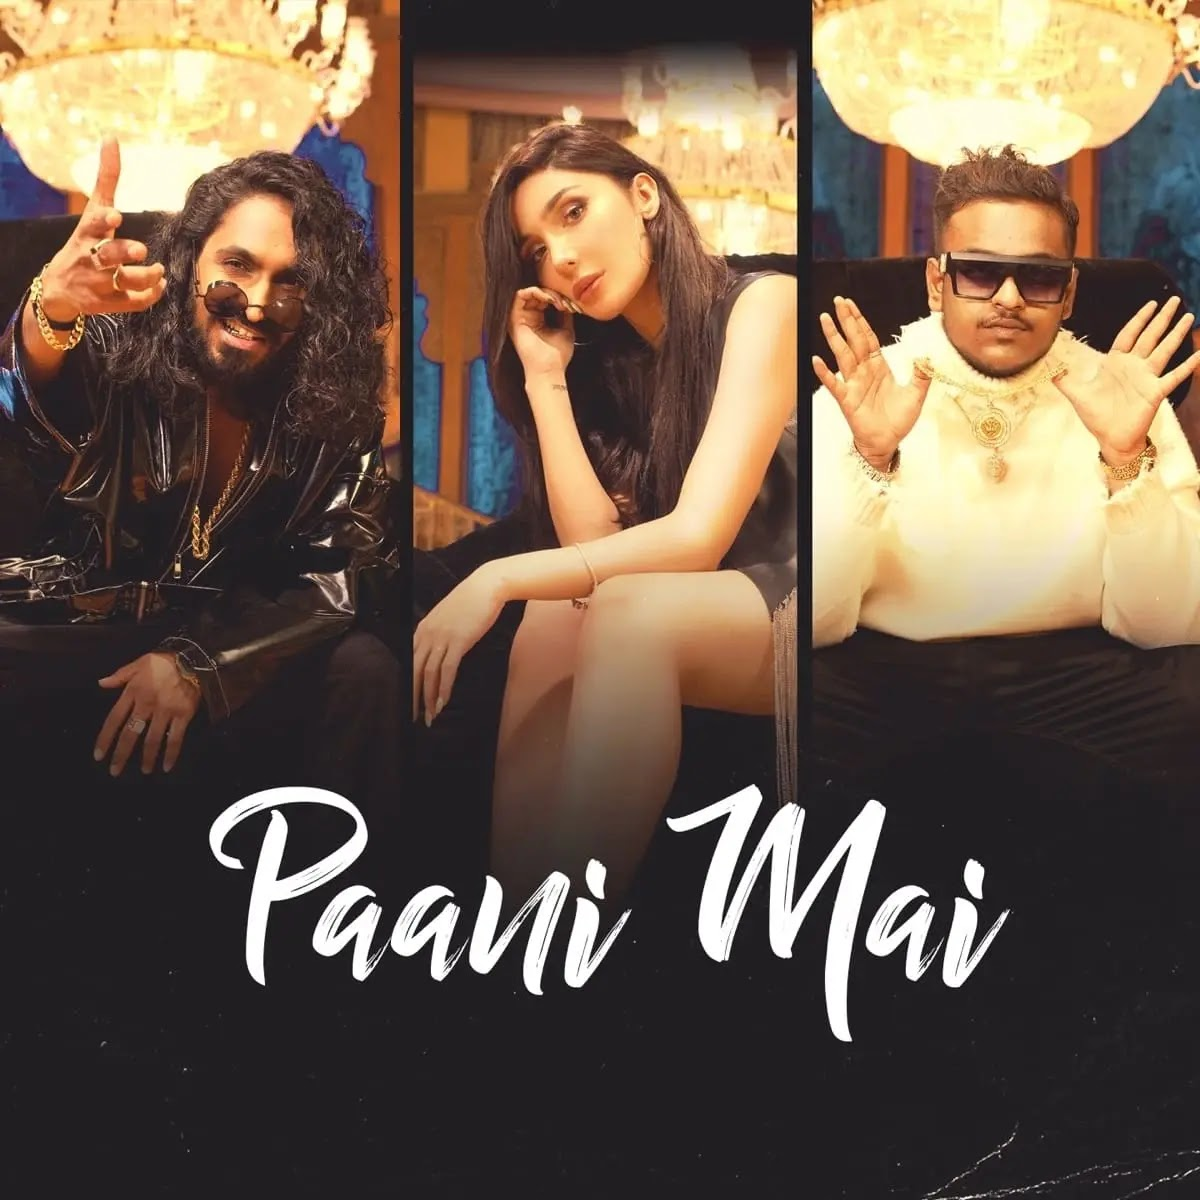 Paani Mai Mp3 Song Download 320kbps Free